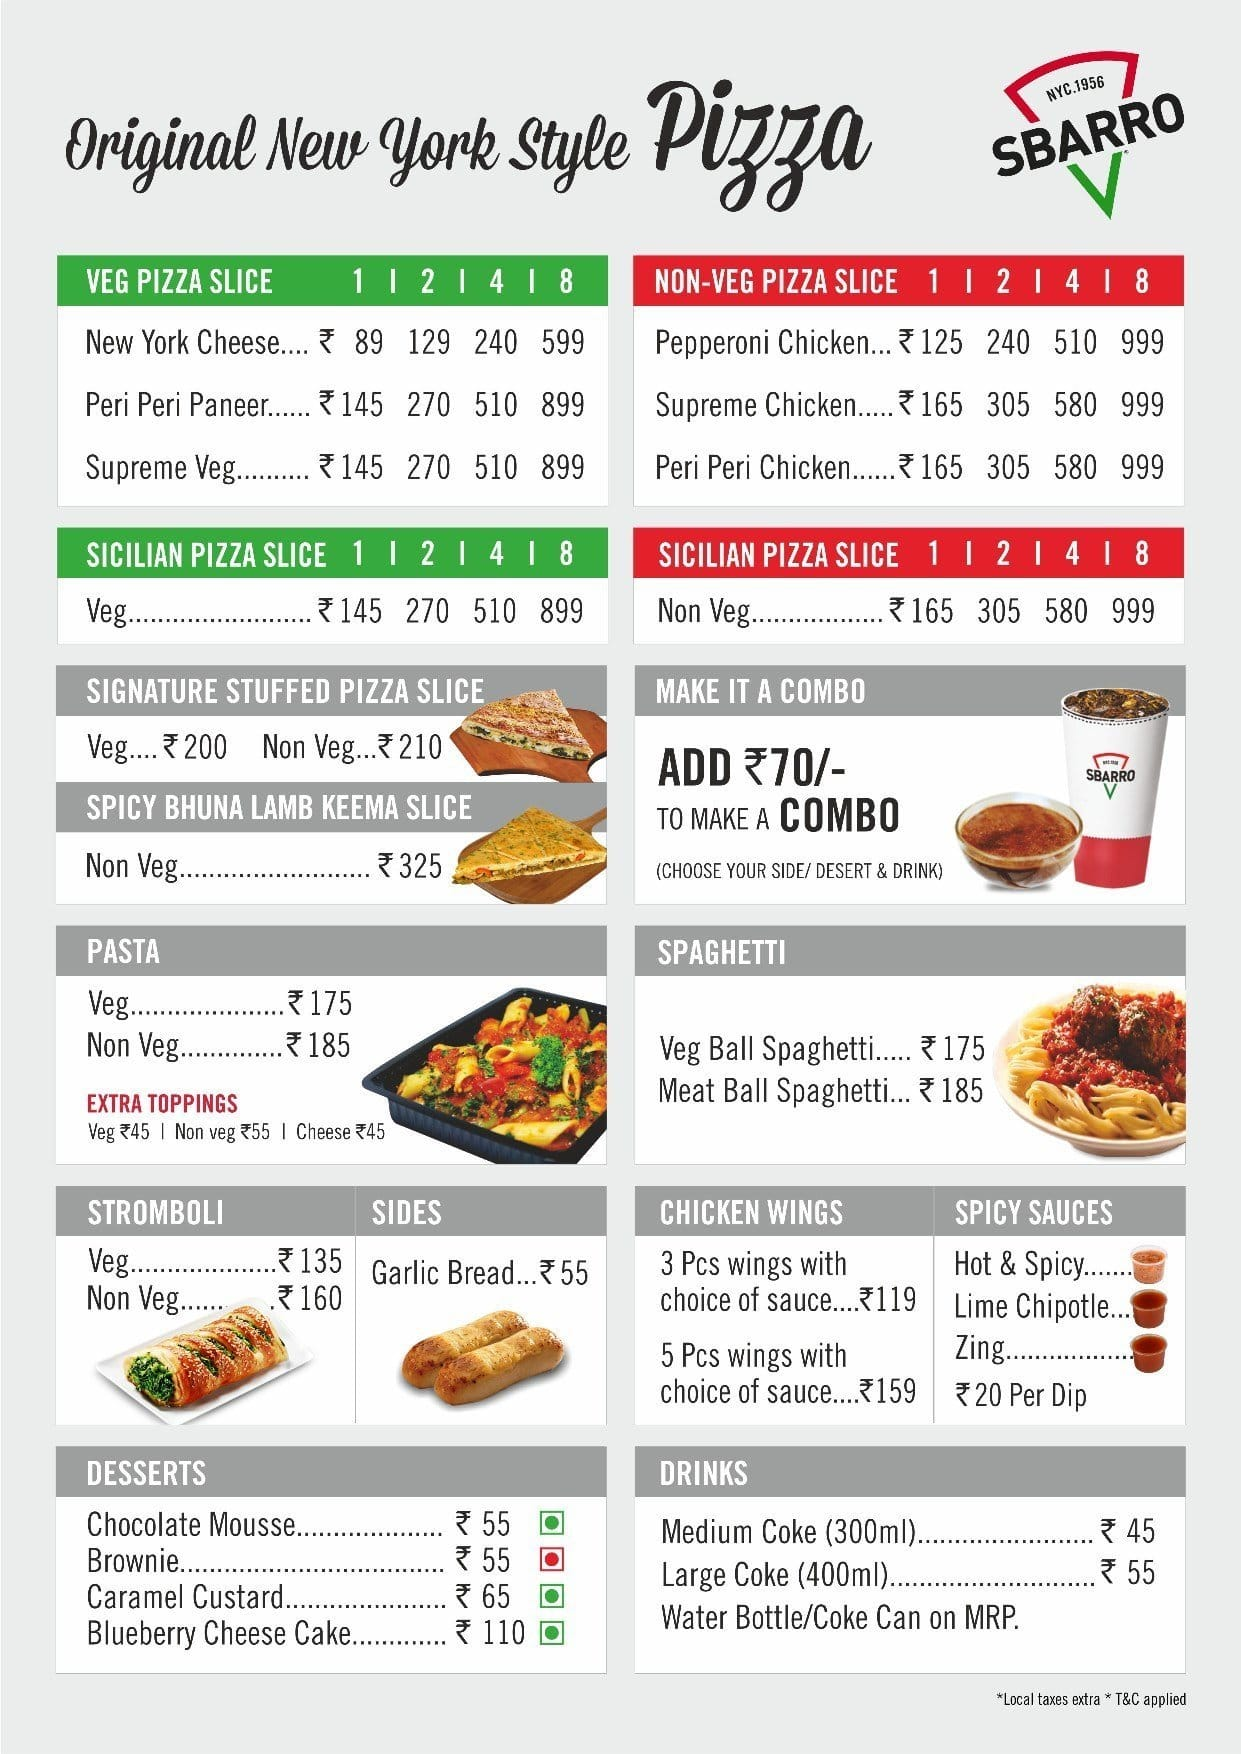 Sbarro India. Fast Food Restaurant. Community See All. 24, people like this. 24, people follow this. About See All. Typically replies within a few hours. Contact Sbarro India on Messenger. modestokeetonl4jflm.gq Fast Food Restaurant · Pizza Place. People/5(7).